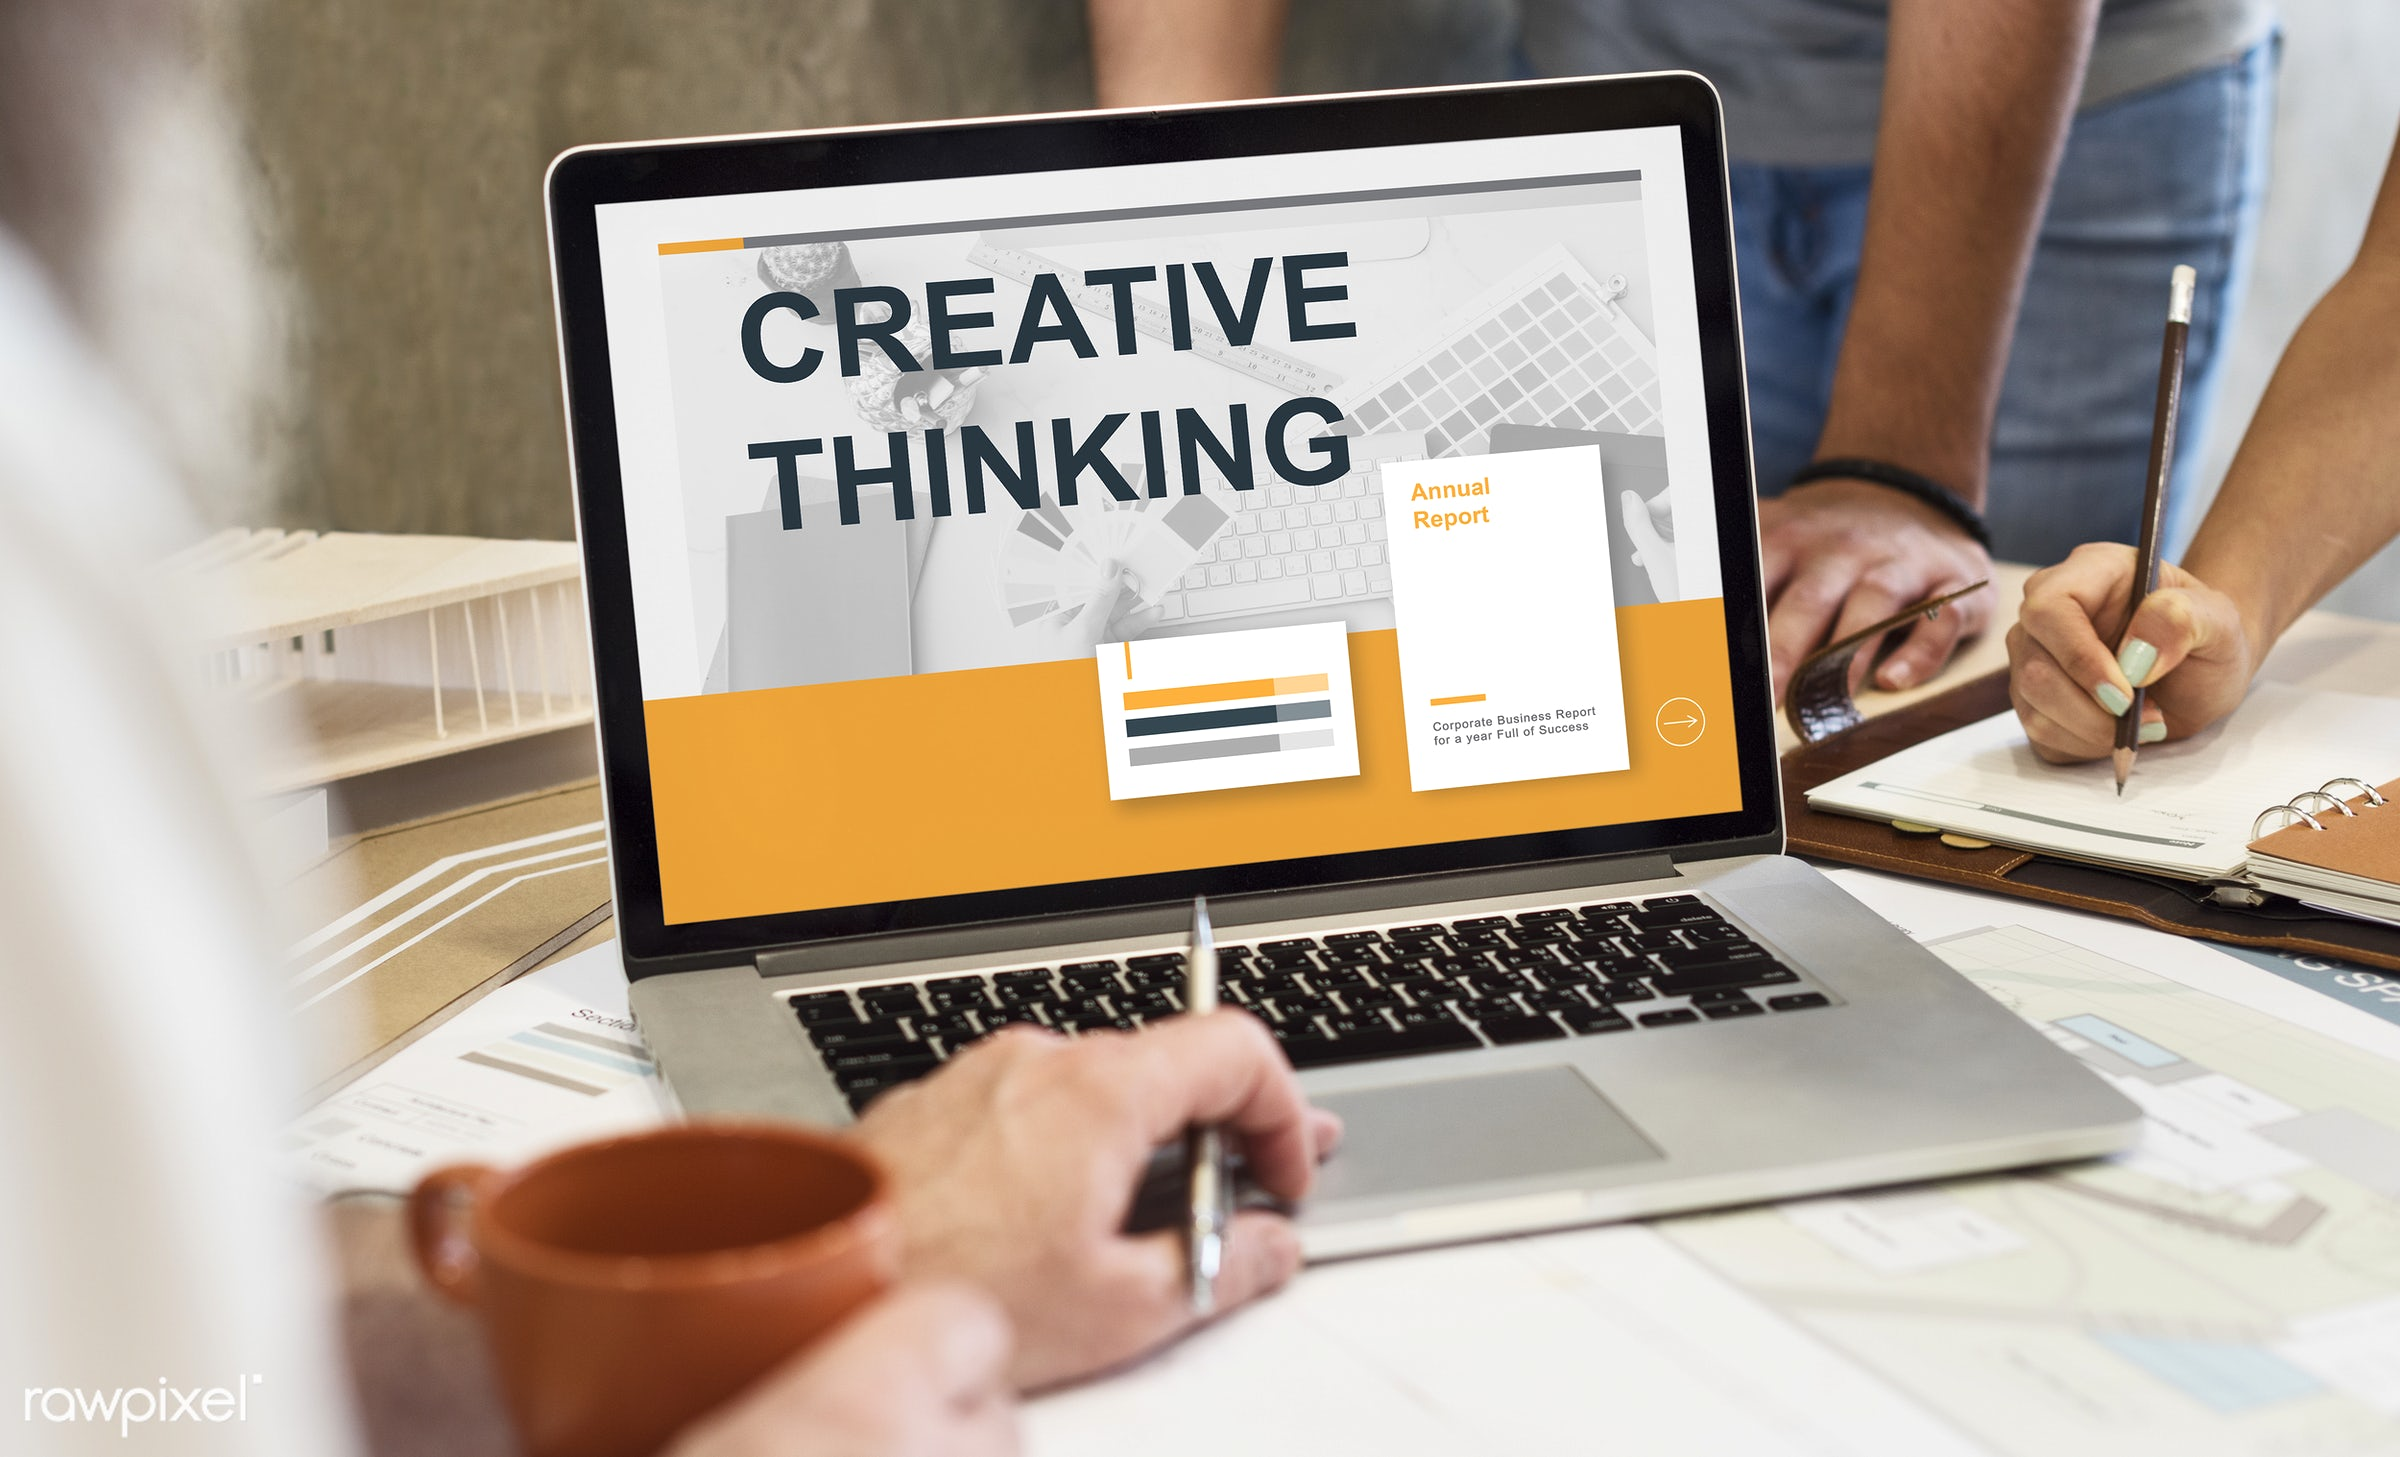 action, architect, architecture, be creative, brainstorm, brainstorming, business, coffee, coffee cup, concepts, creative,...